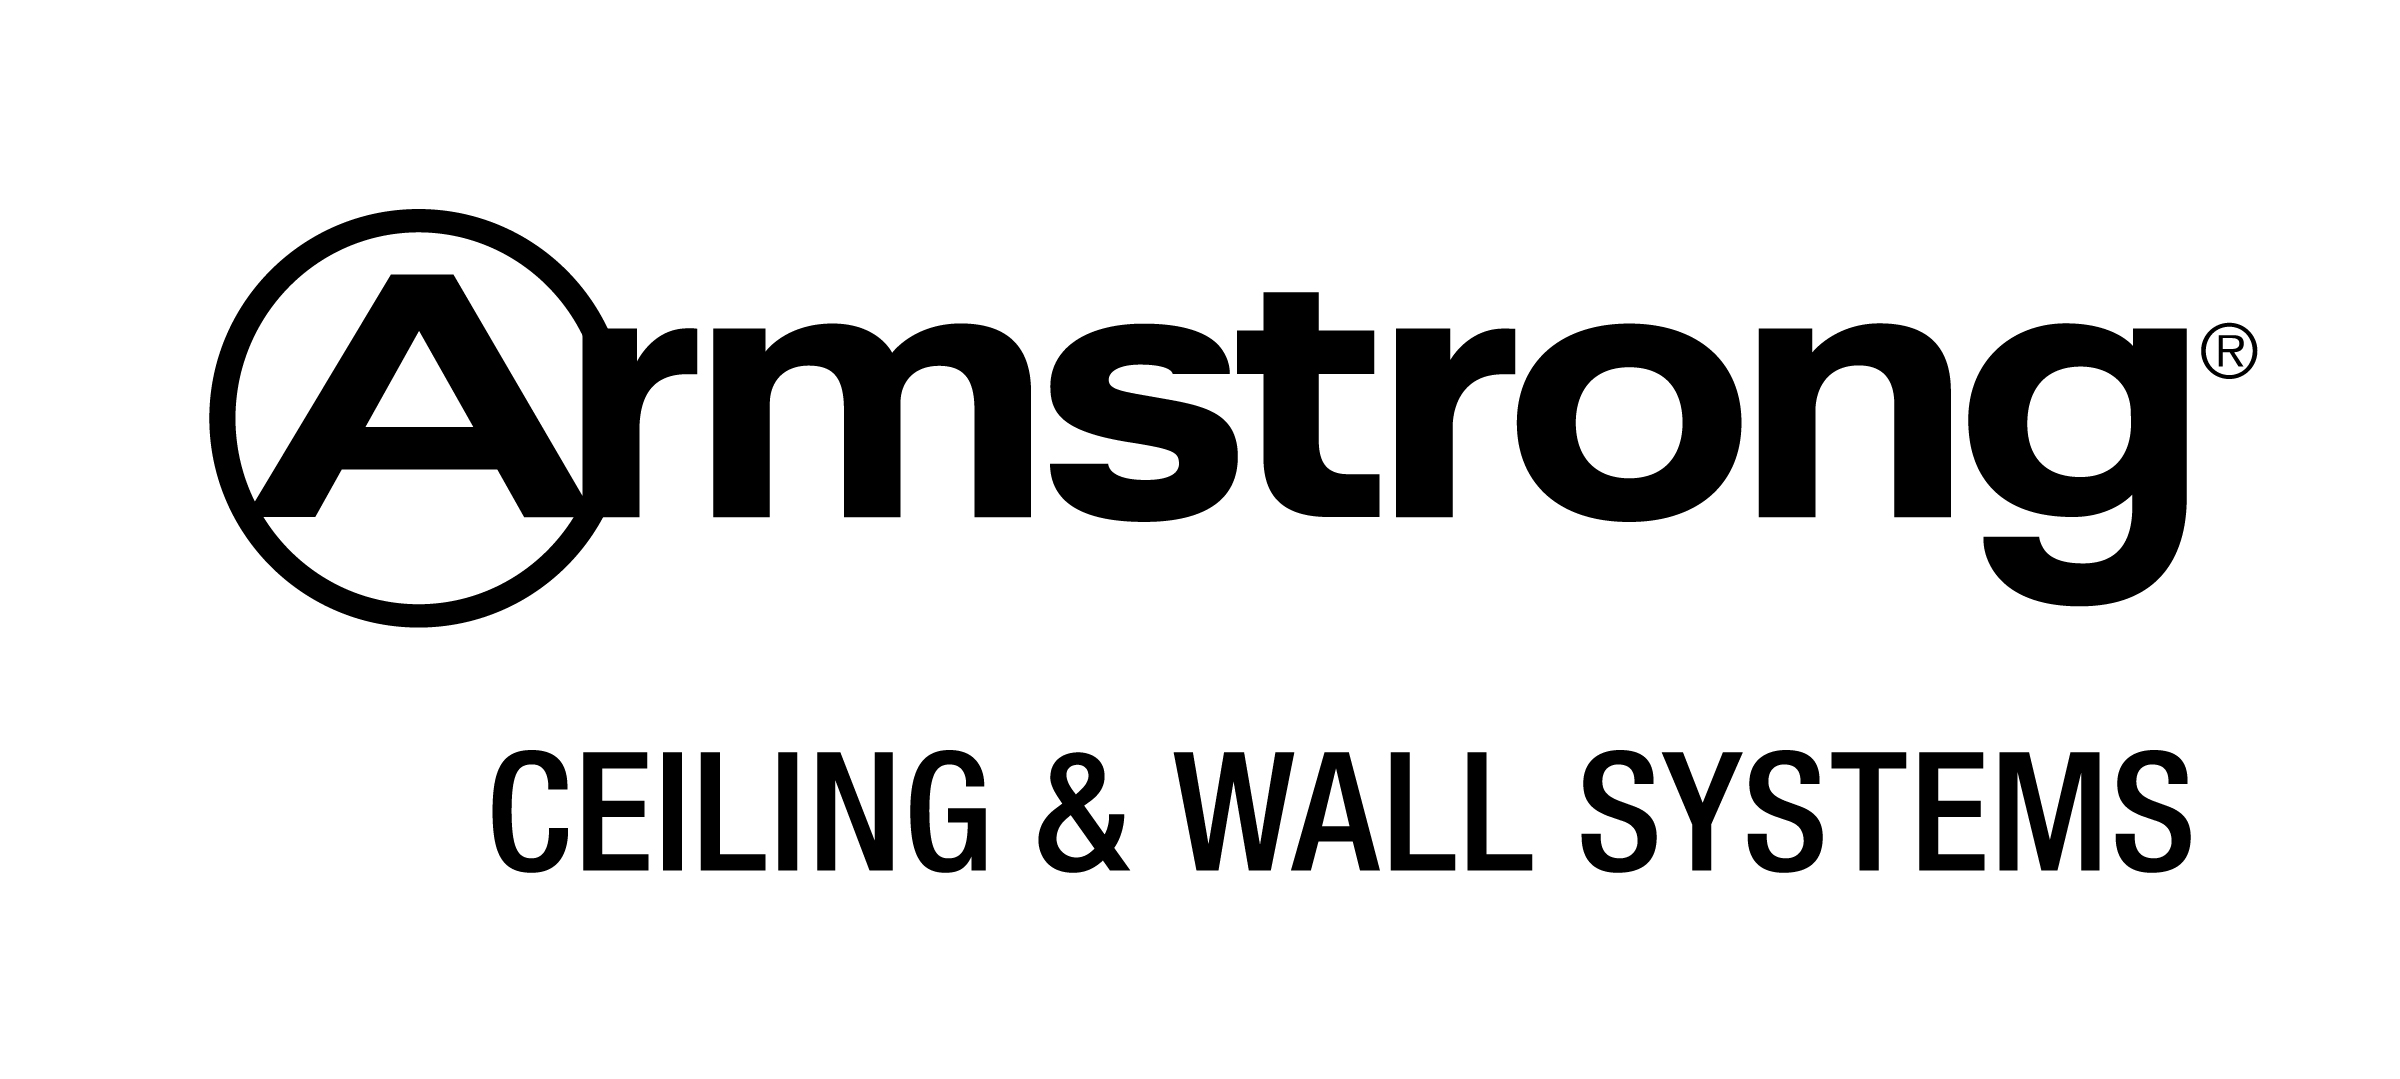 Credit Carnival - Armstrong Ceilings logo